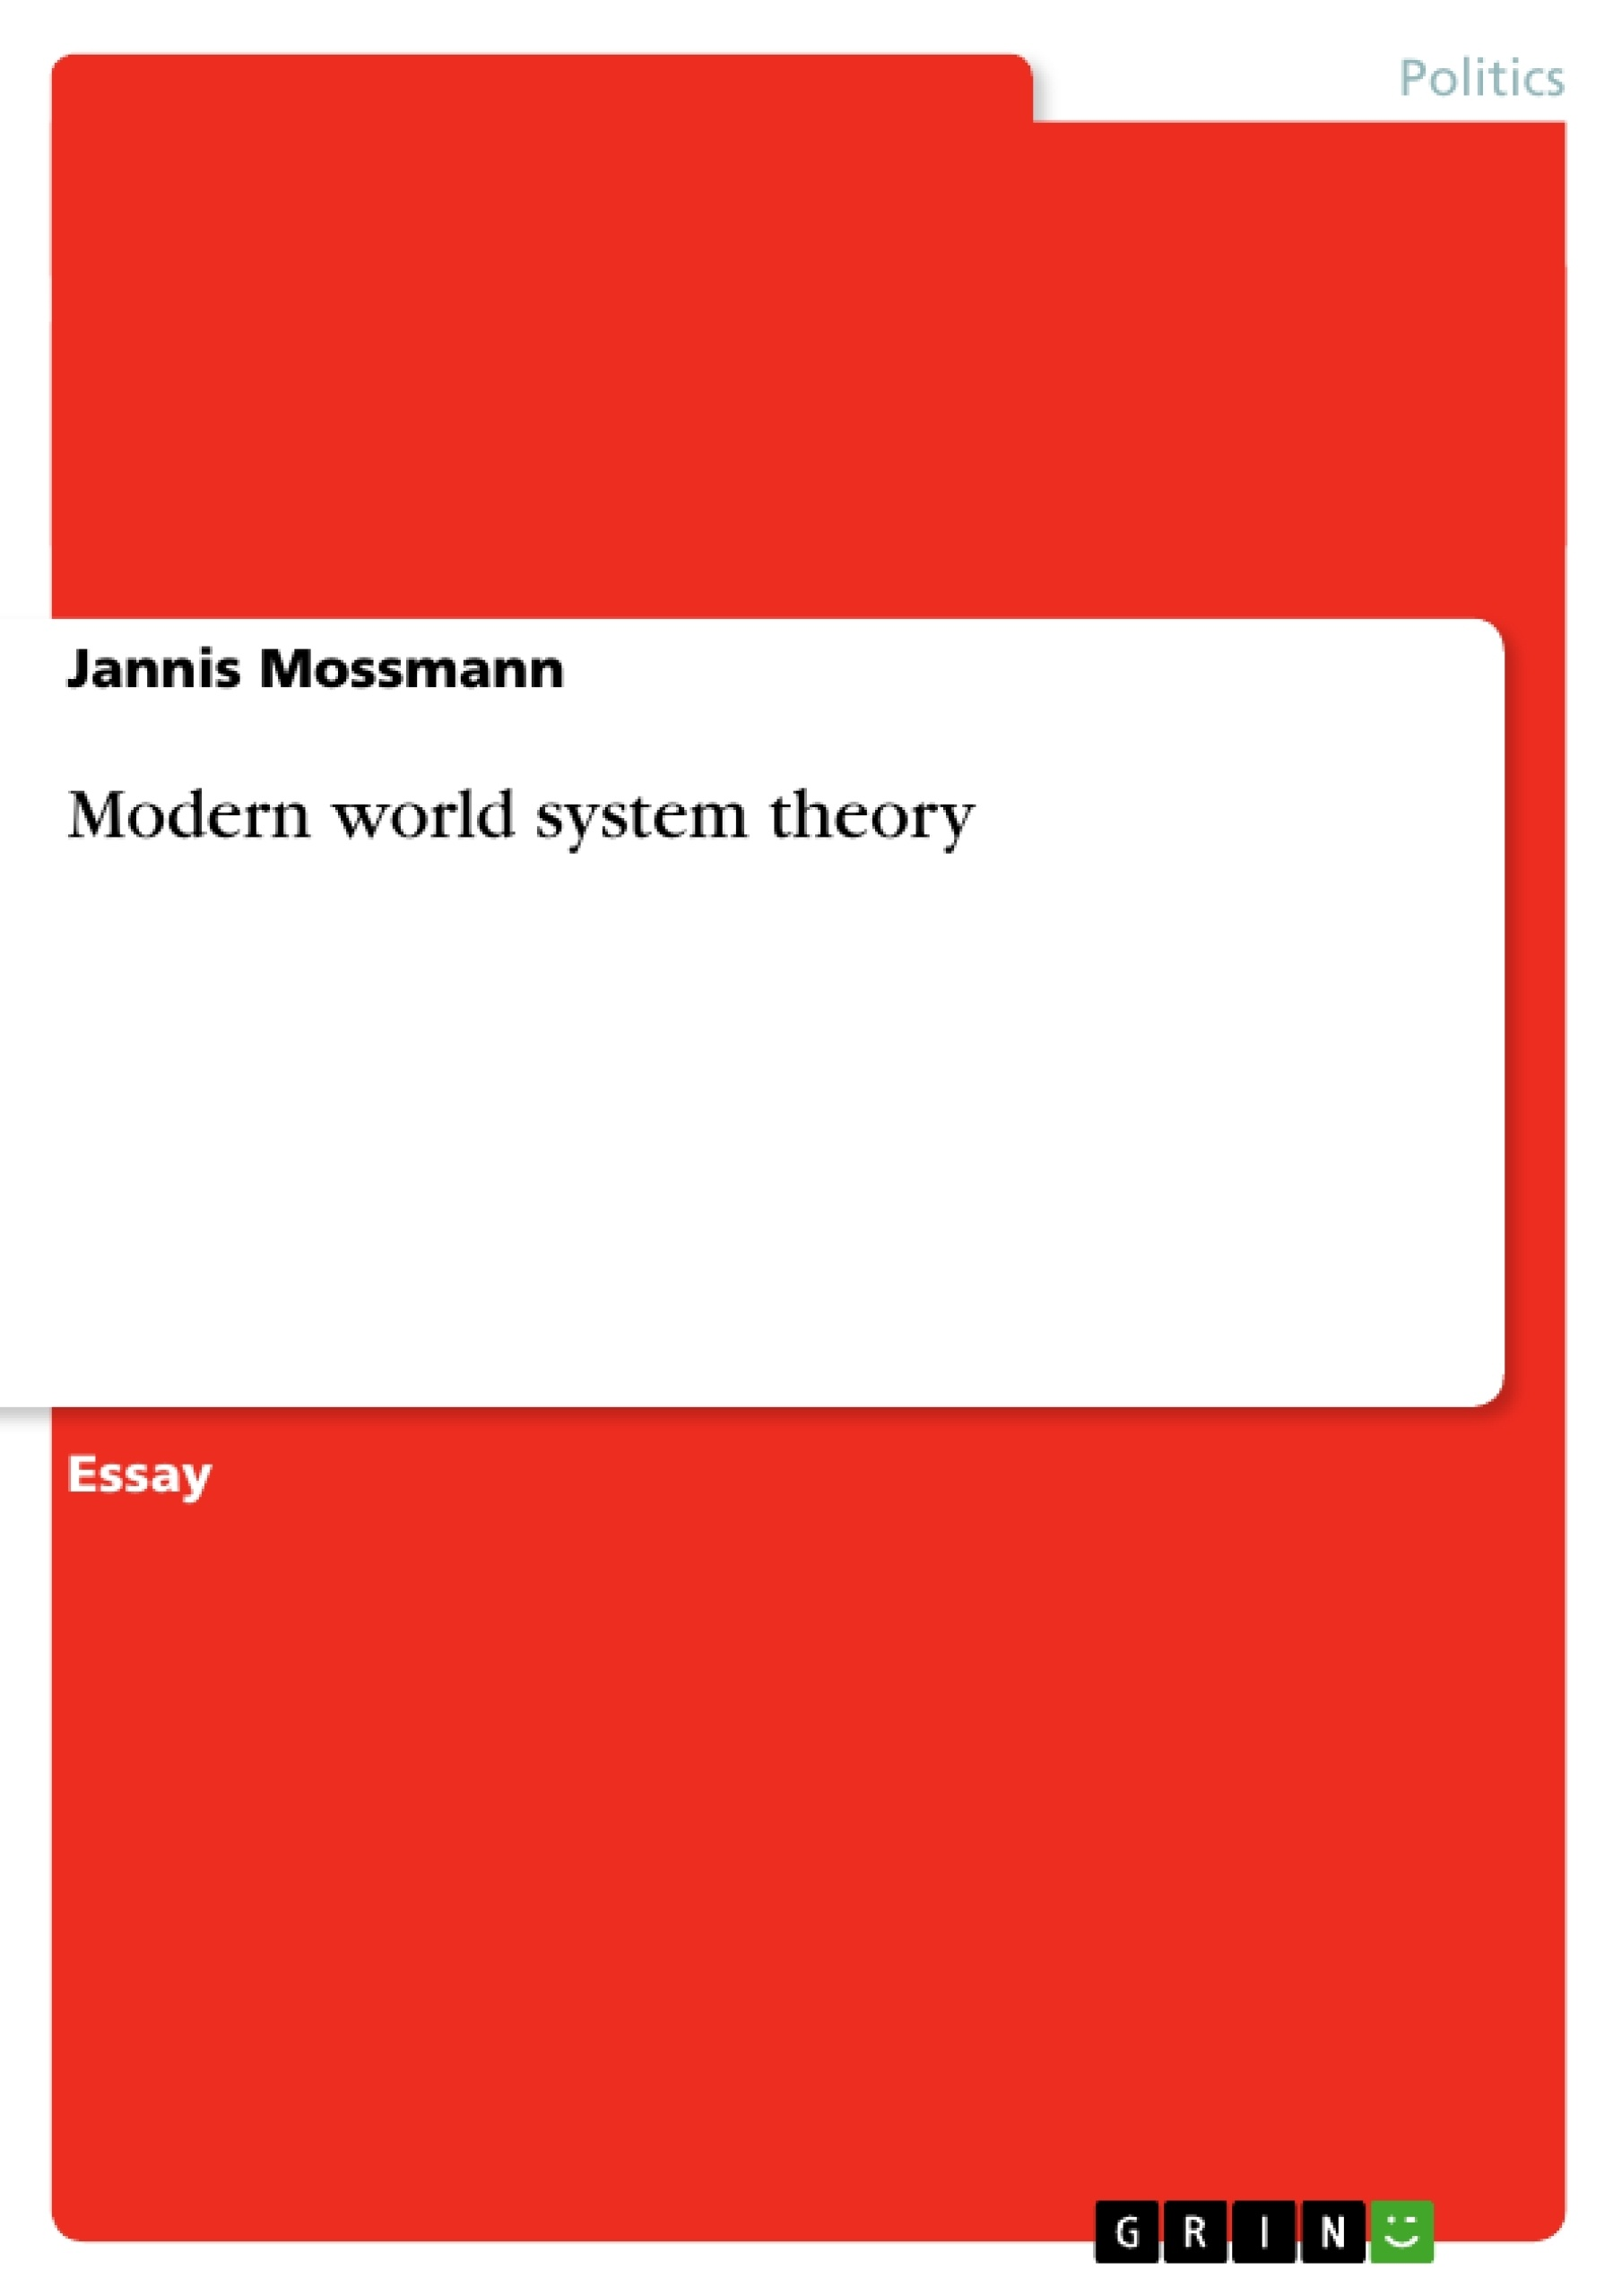 modern world system theory publish your master s thesis modern world system theory publish your master s thesis bachelor s thesis essay or term paper